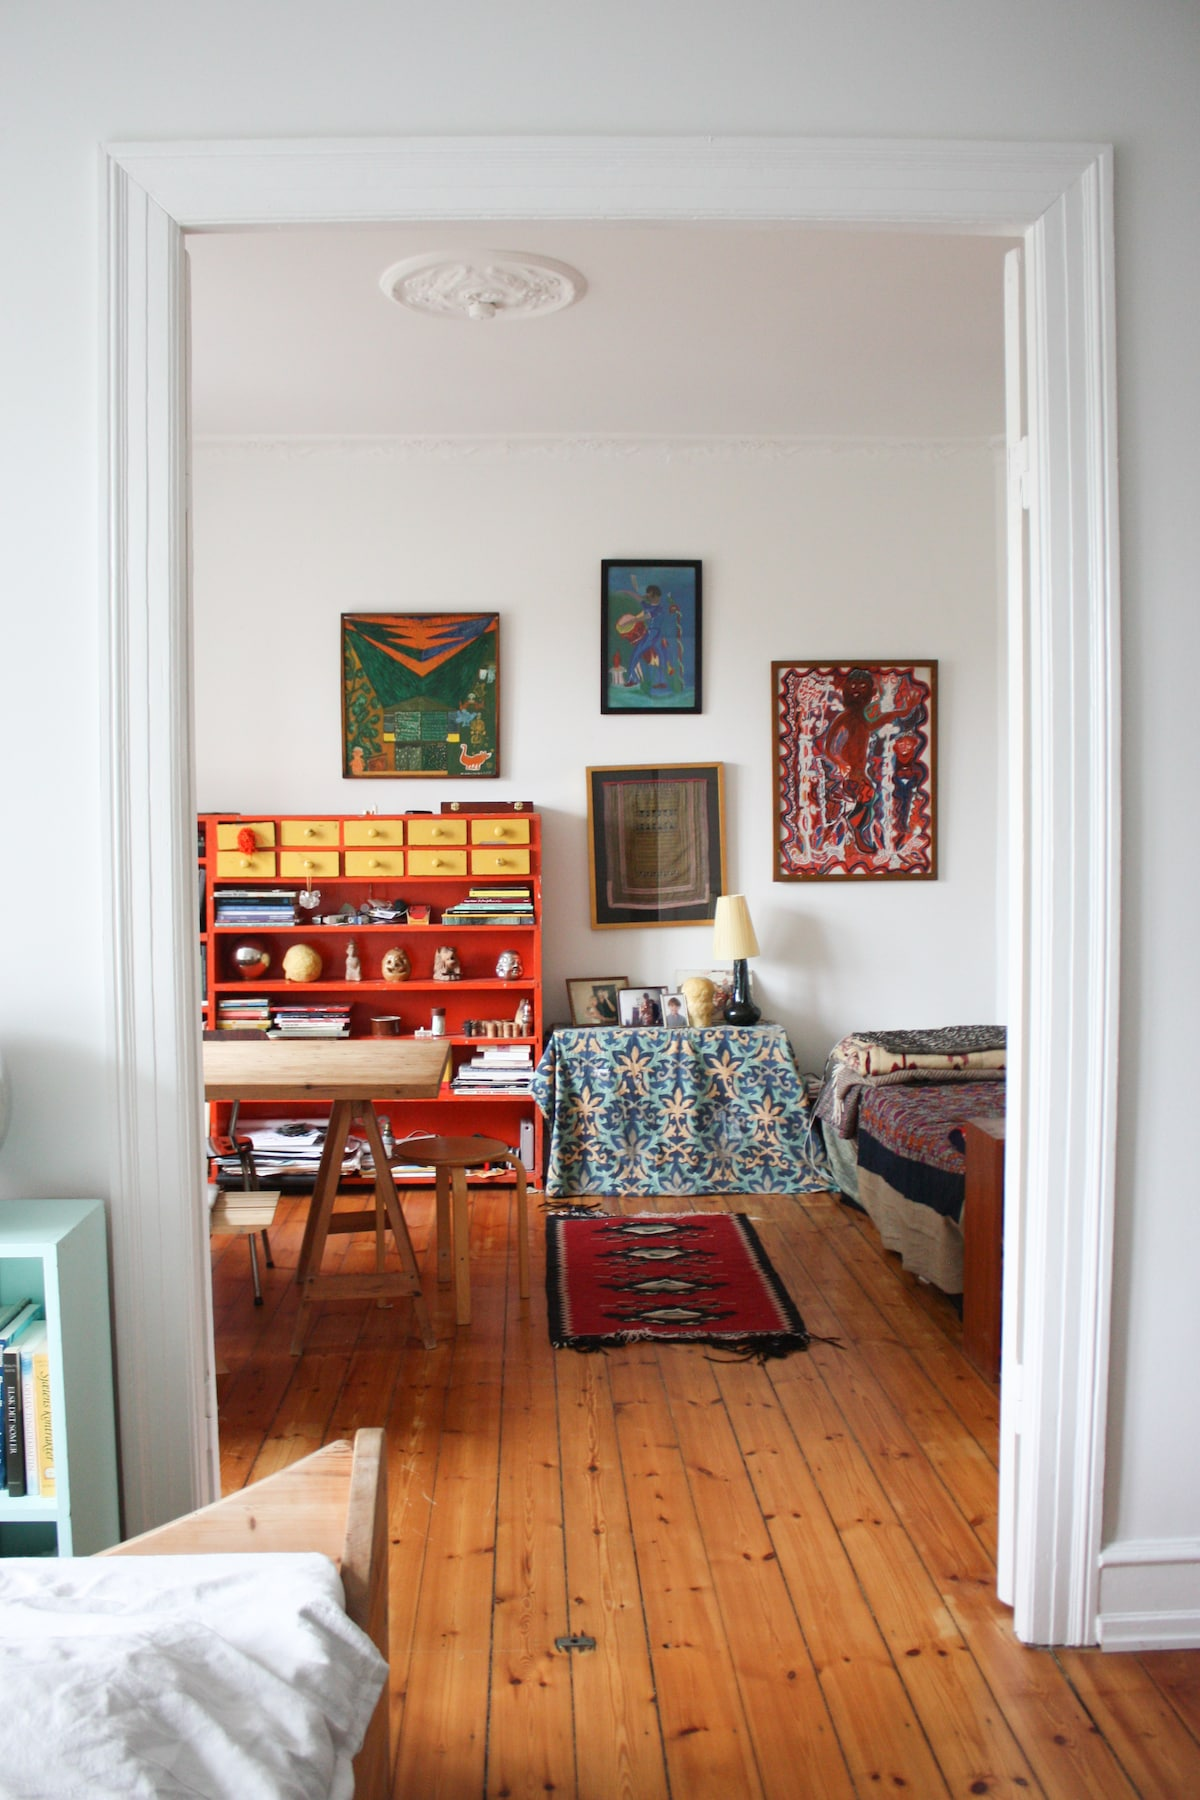 Bohemian charm in artists' home.